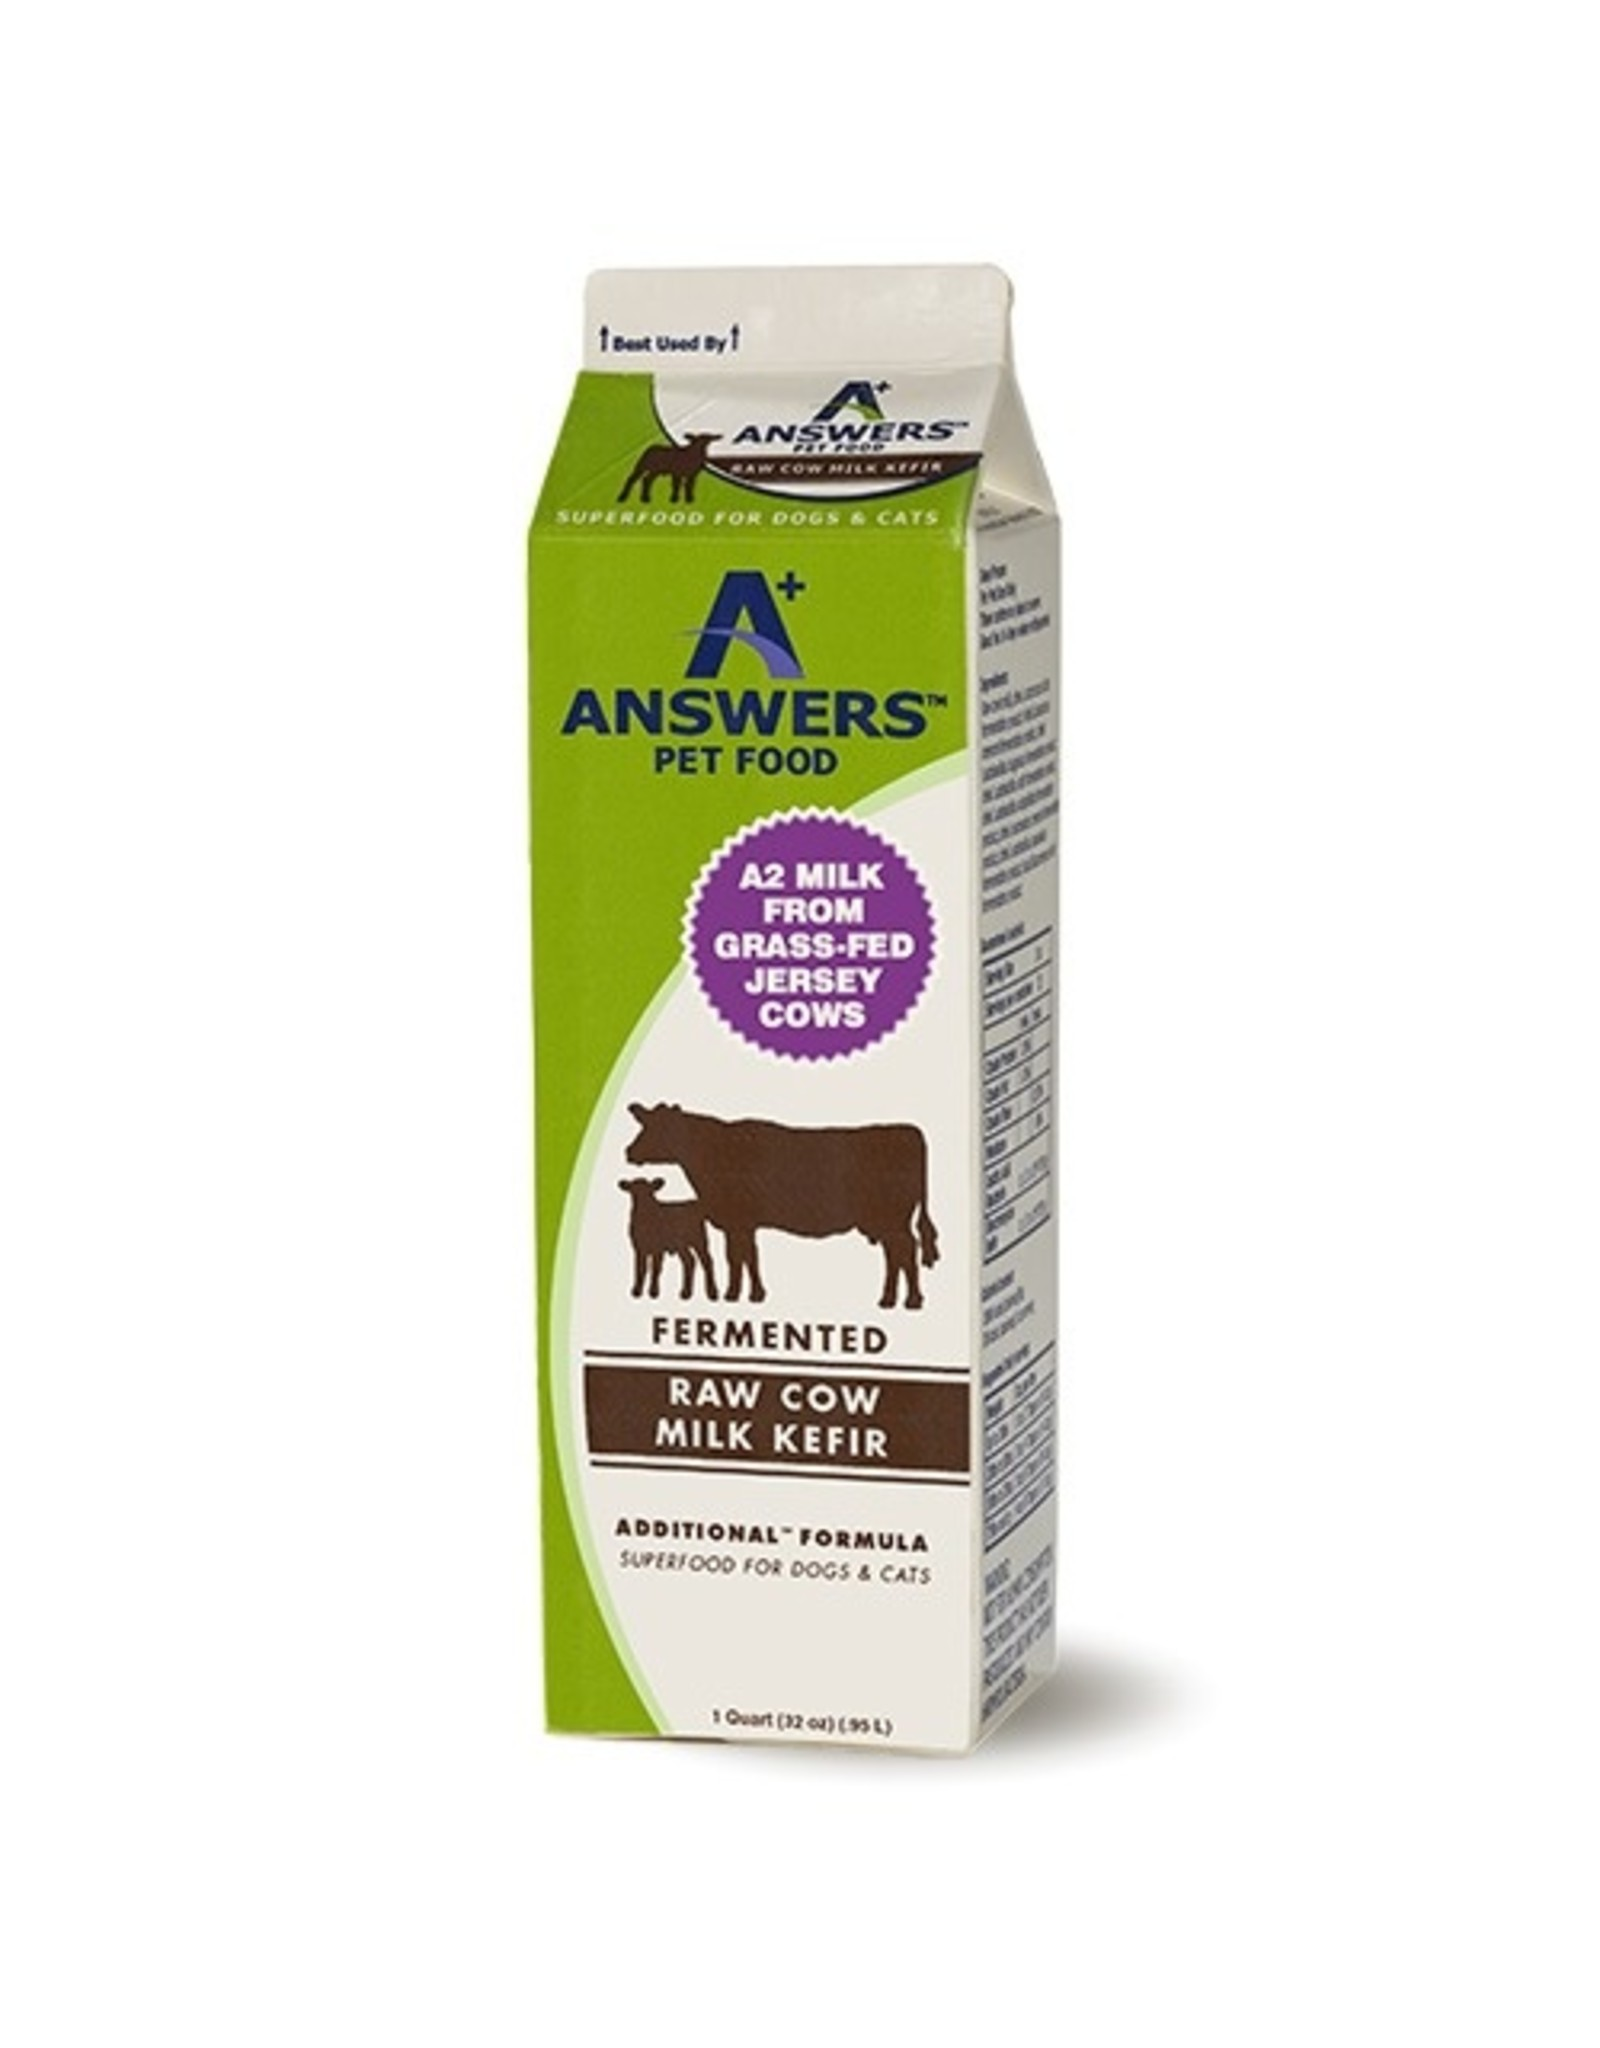 Answers Answers Raw Cow Milk Kefir